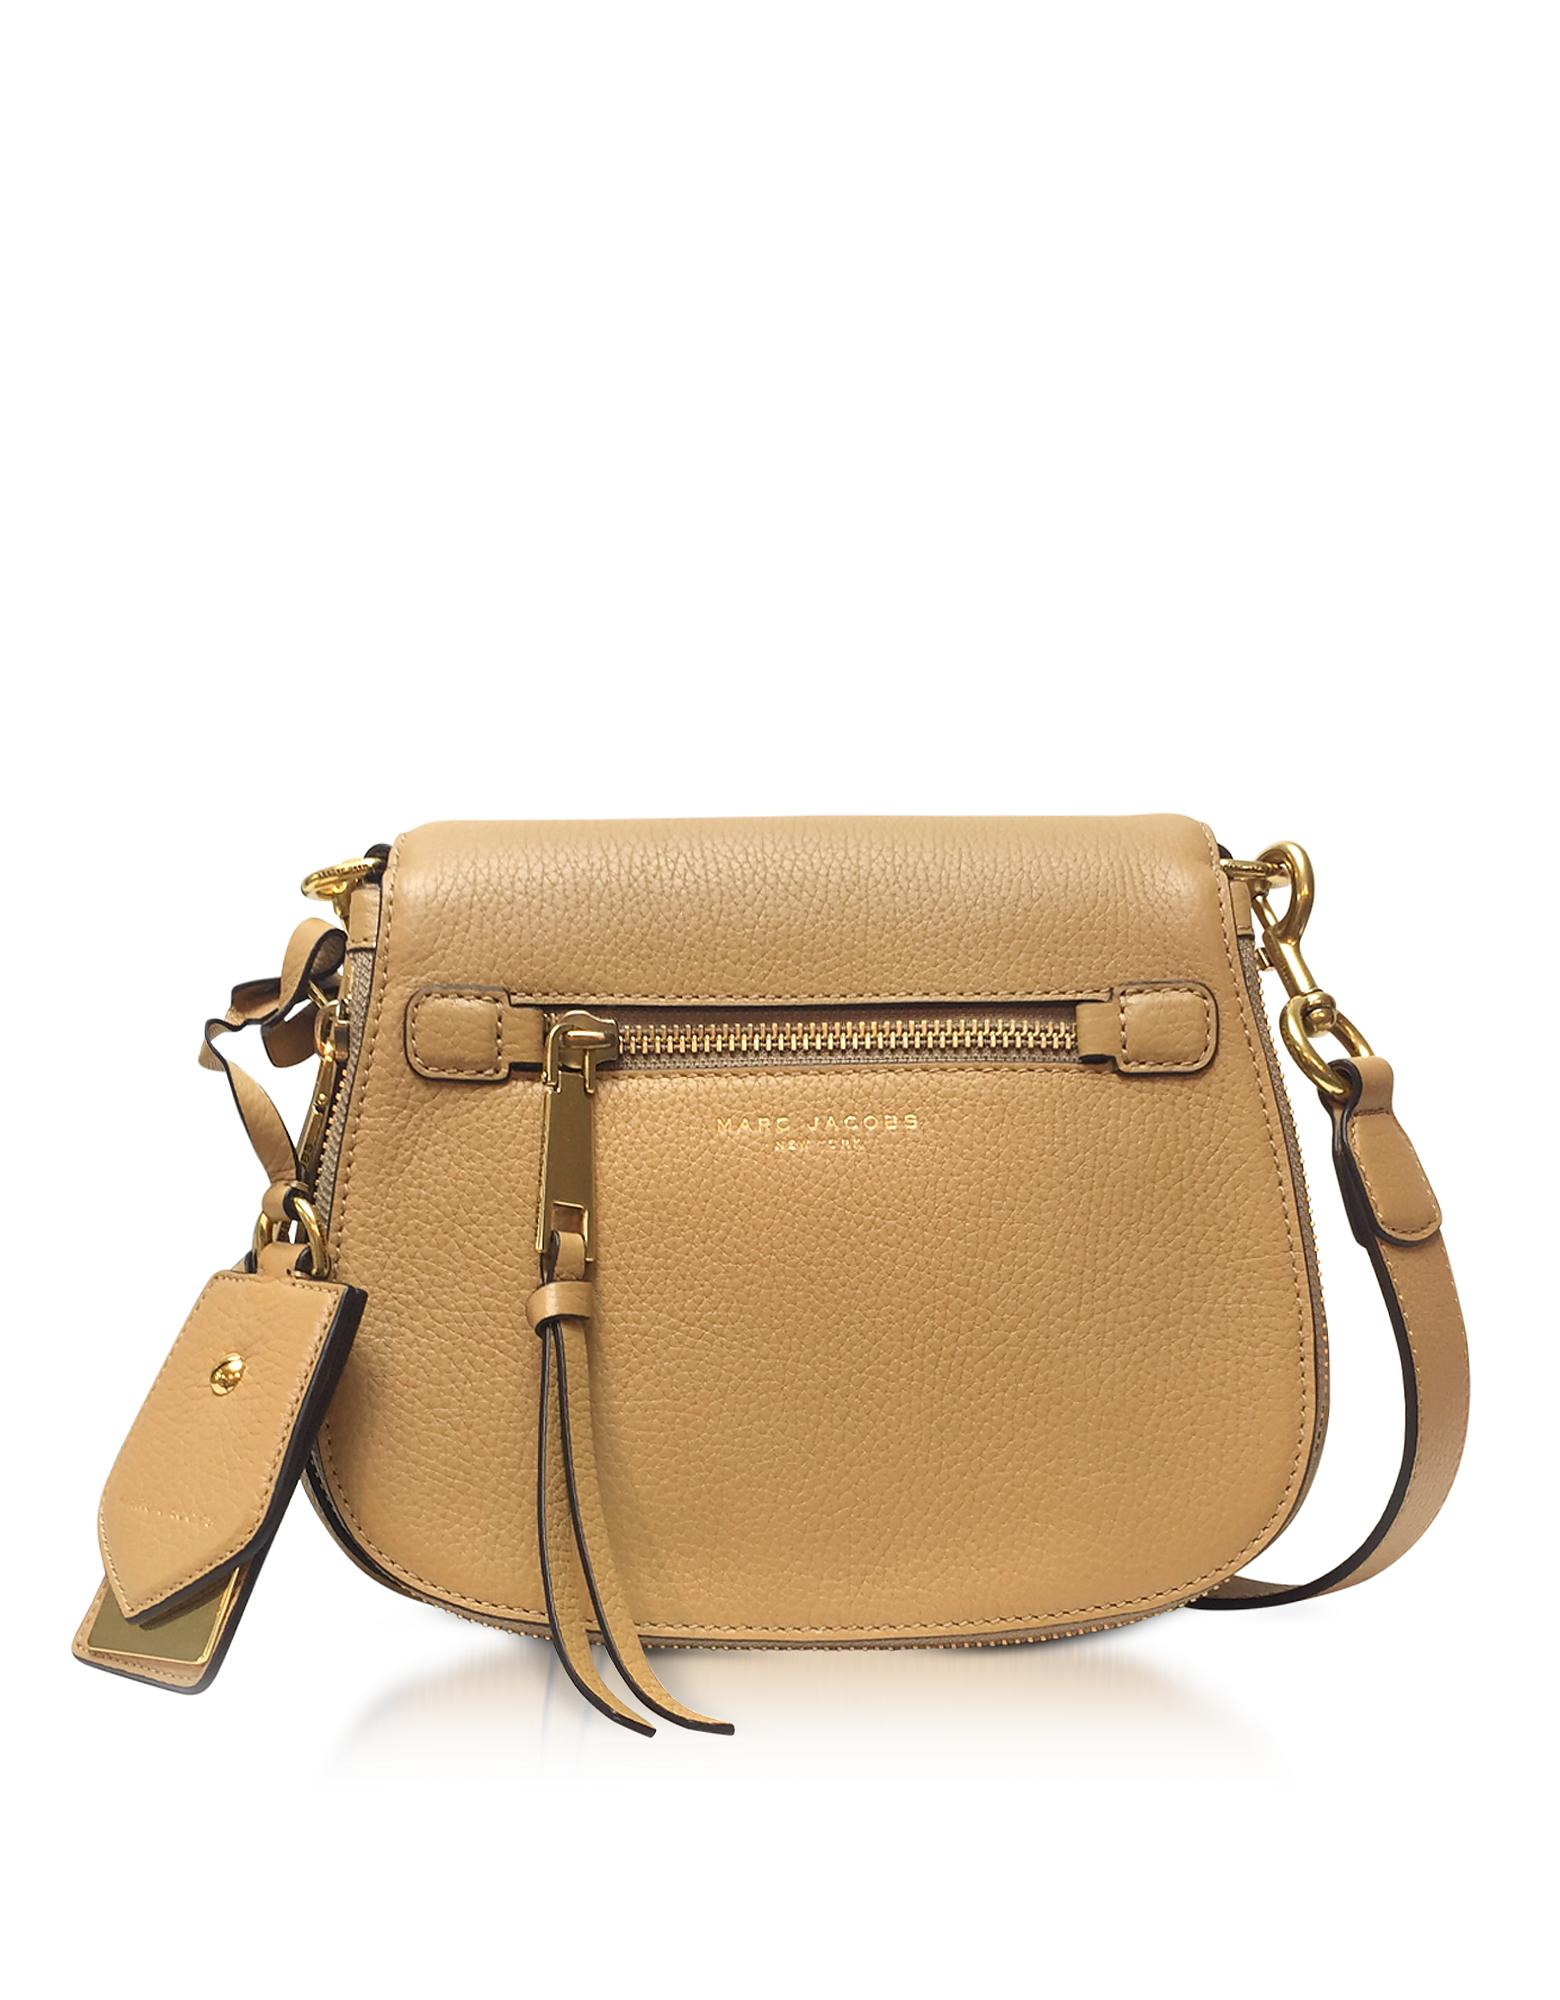 7863093307 Marc Jacobs Recruit Golden Beige Leather Small Saddle Bag in ...